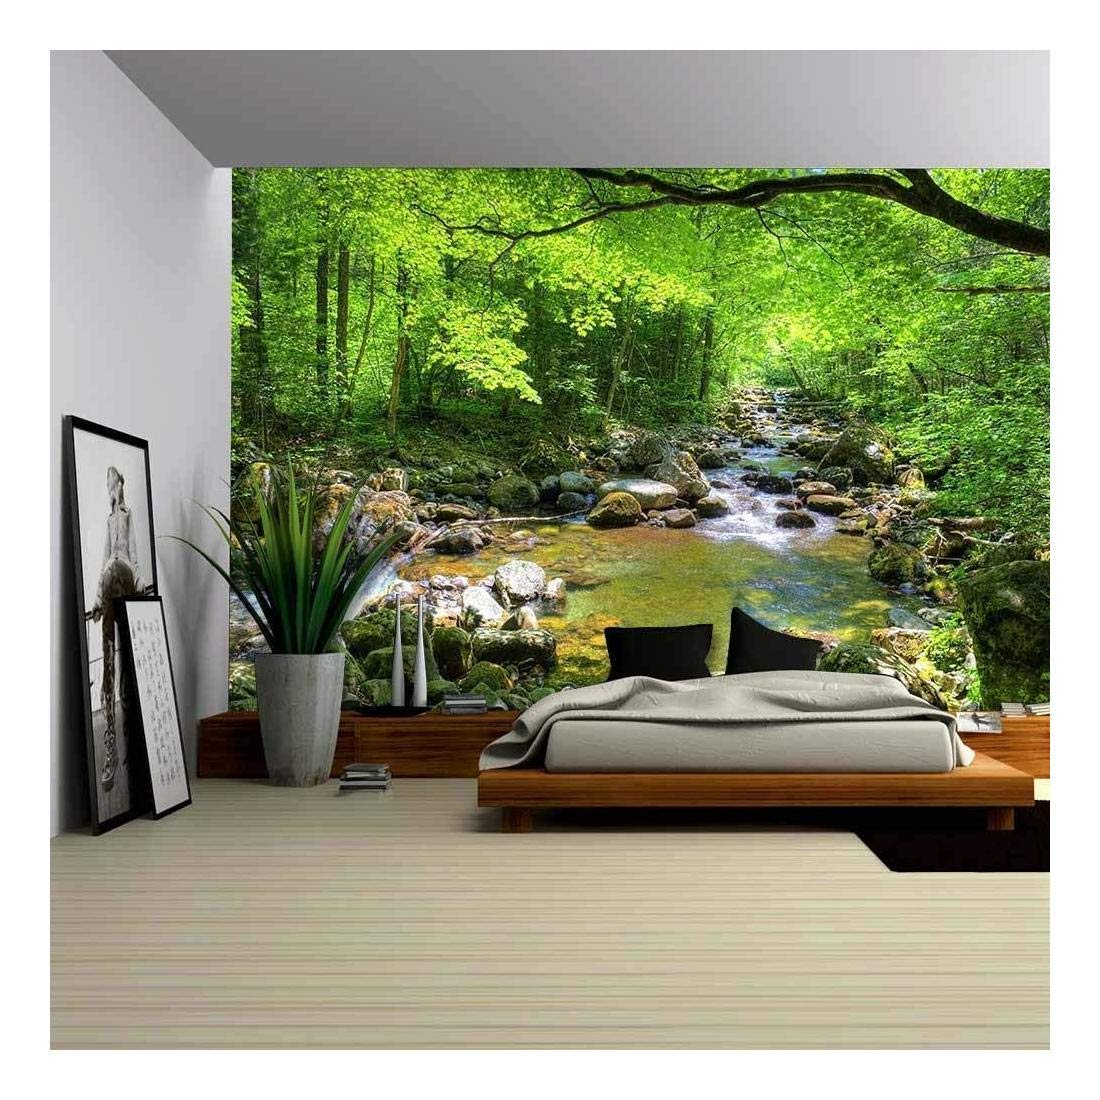 wall26 - Fall Forest Stream Smolny in Russian Primorye Reserve - Removable Wall Mural | Self-Adhesive Large Wallpaper - 66x96 inches